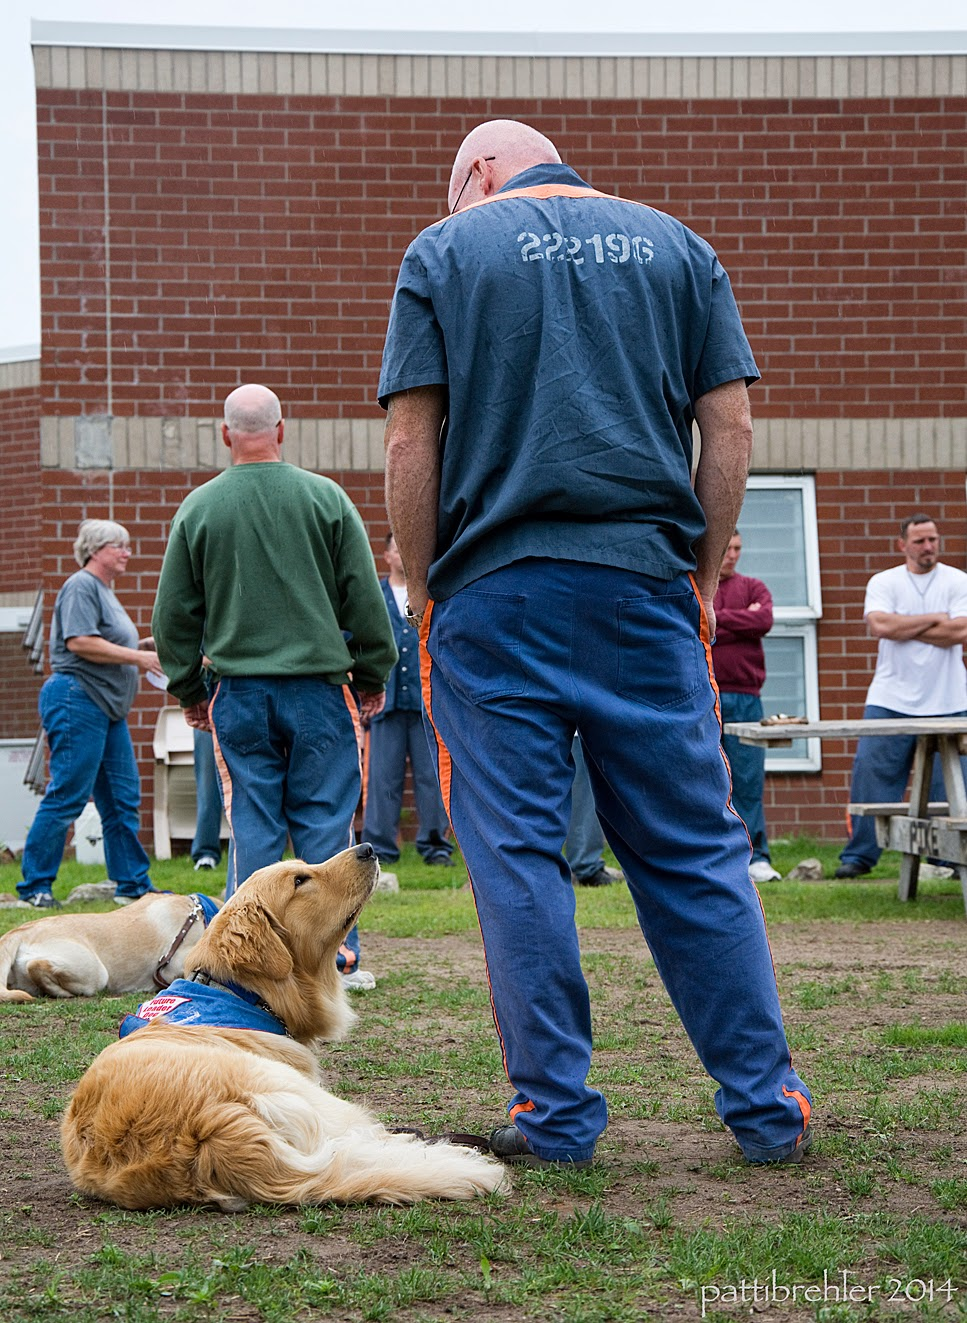 The two goldens are still lying down, the one in the foreground is looking up at the man standing next to him. The man is looking down at the puppy.